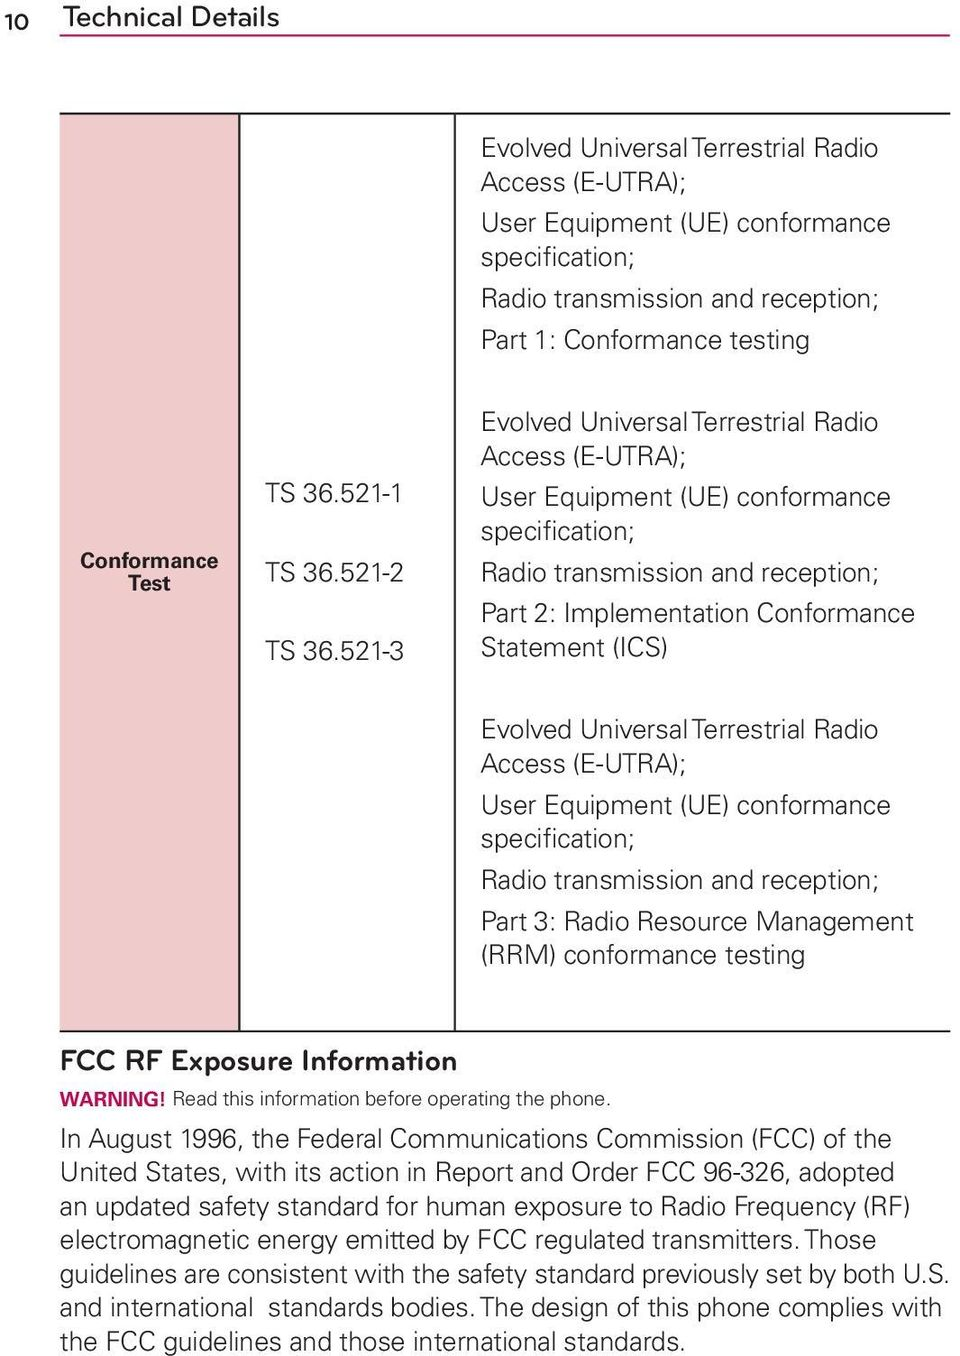 521-3 Evolved Universal Terrestrial Radio Access (E-UTRA); User Equipment (UE) conformance specification; Radio transmission and reception; Part 2: Implementation Conformance Statement (ICS) Evolved